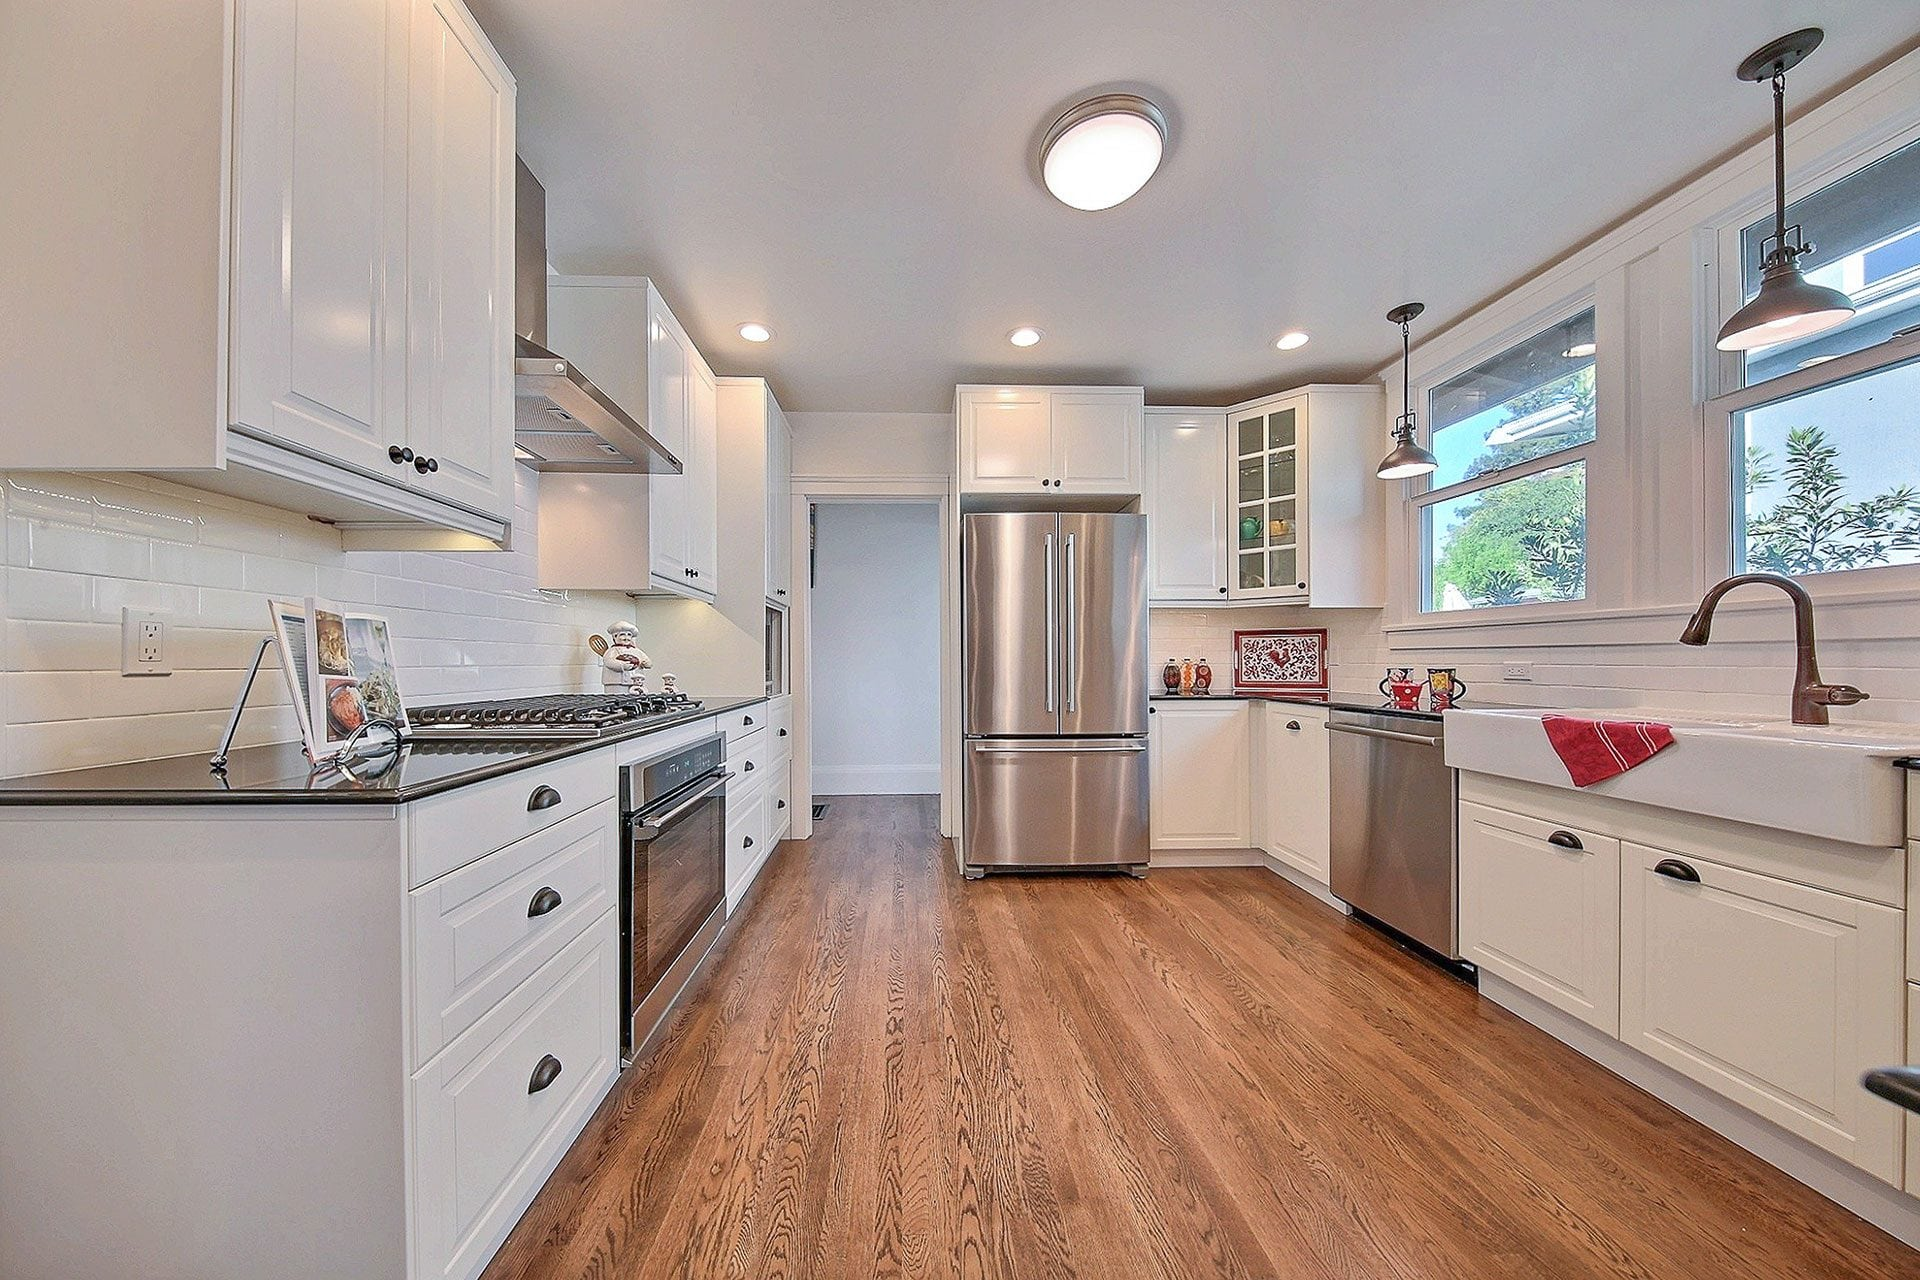 kitchen after bungalow remodel